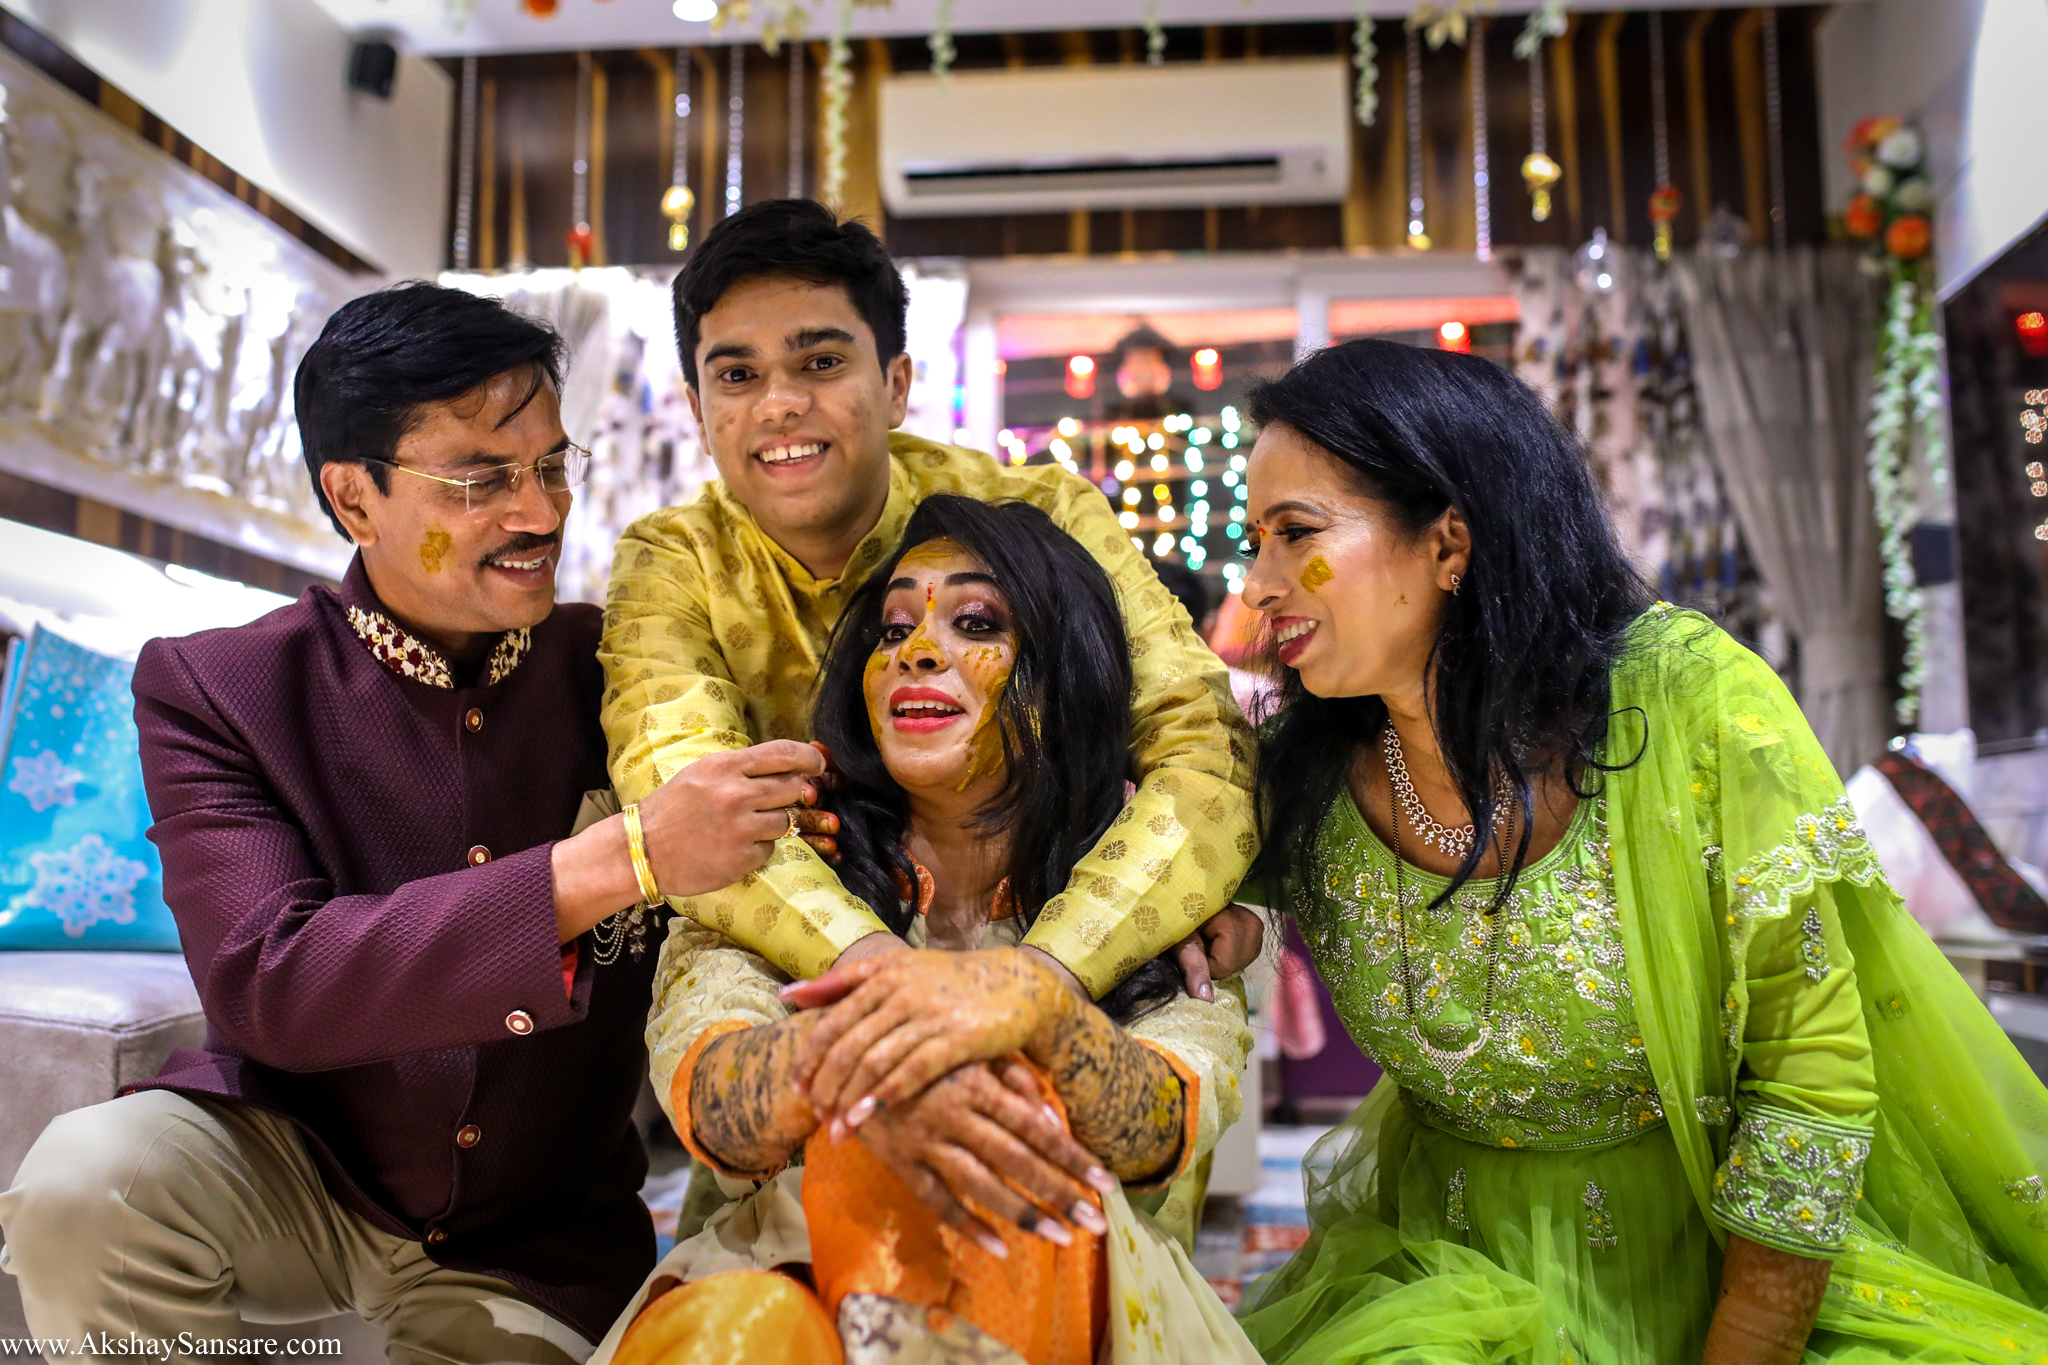 Nupur & Rohan wedding Akshay Sansare Photography best wedding photographer in mumbai India Candid(30).jpg